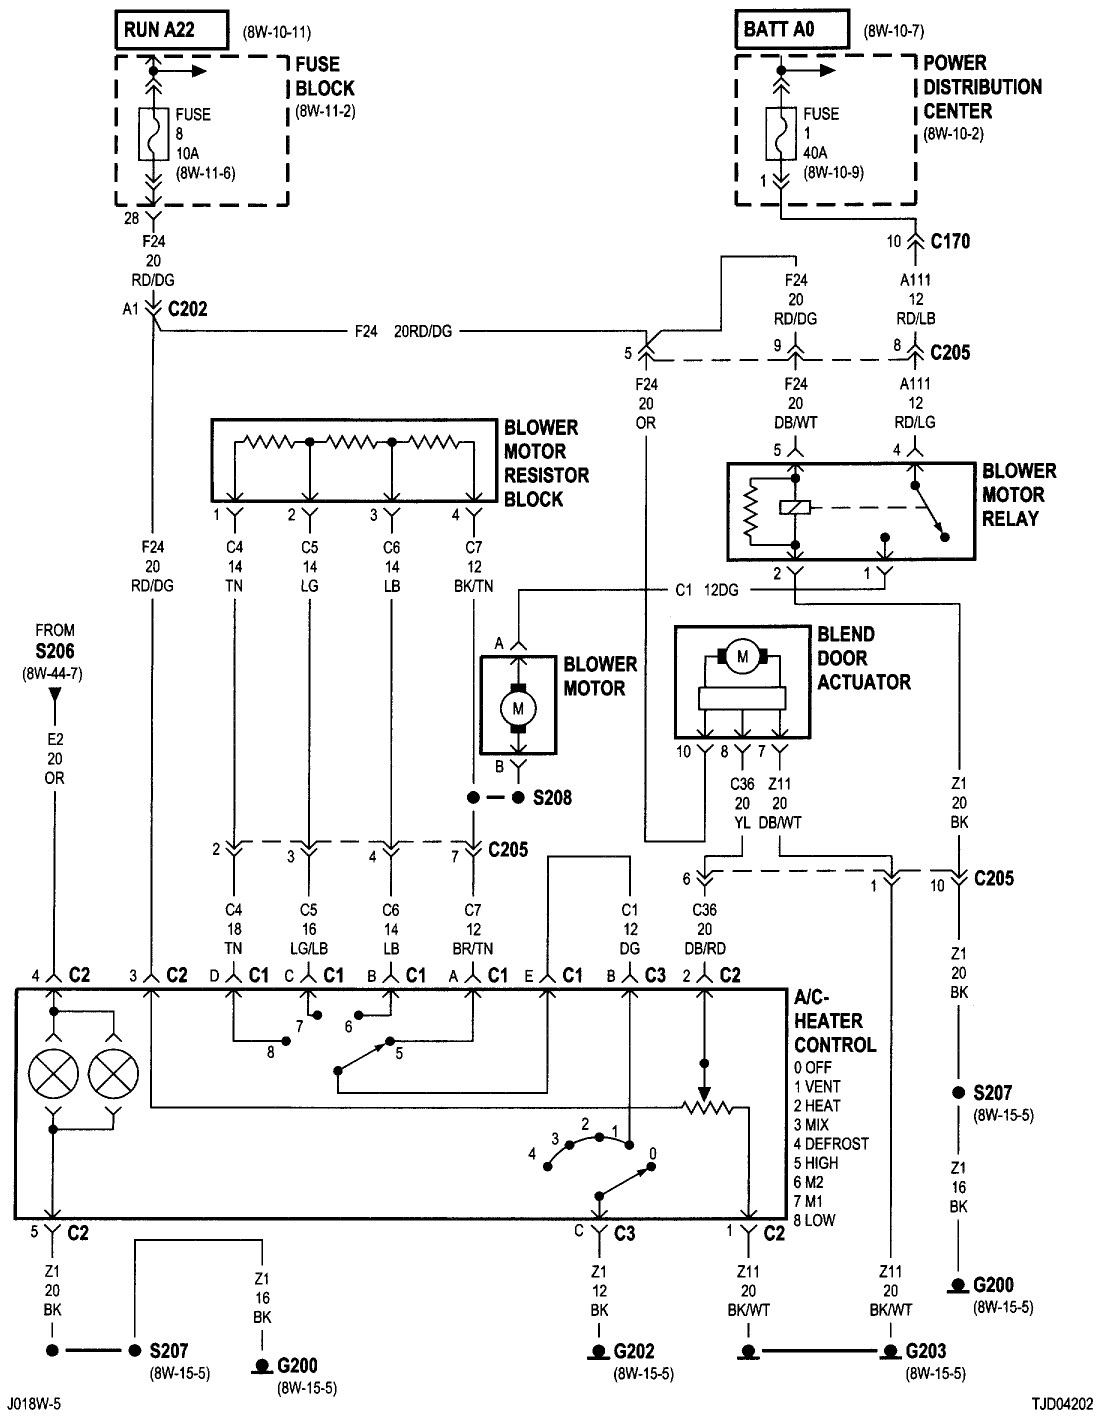 jeep liberty wiring diagram fa 1596  2004jeeplibertyfusepanel 2004 jeep liberty fuse box diagram 2008 jeep liberty wiring diagram 2004 jeep liberty fuse box diagram